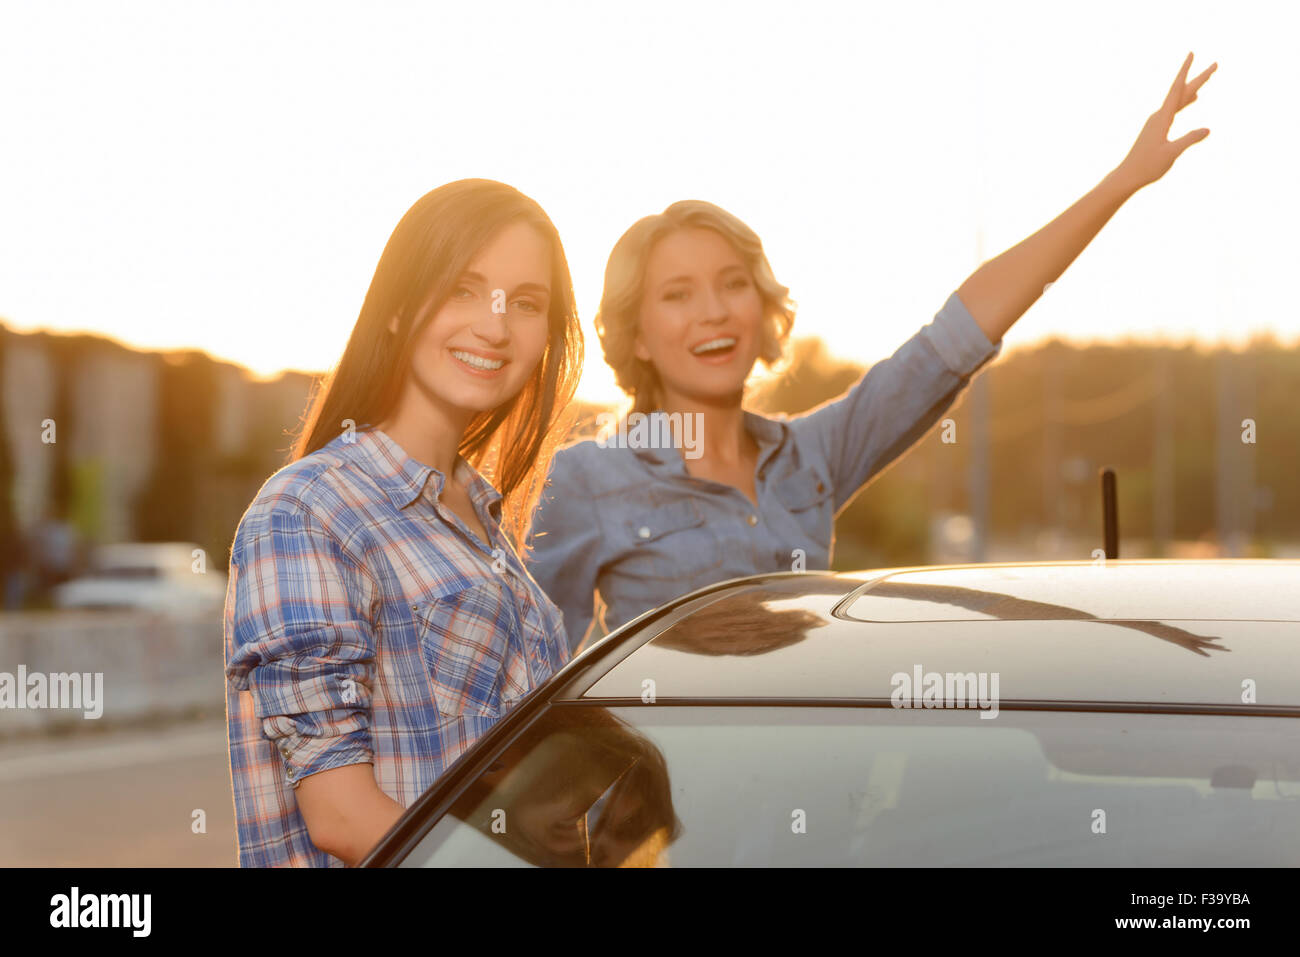 Nice time. Upbeat appealing smiling girls standing near the car and expressing positivity while going to ride - Stock Image